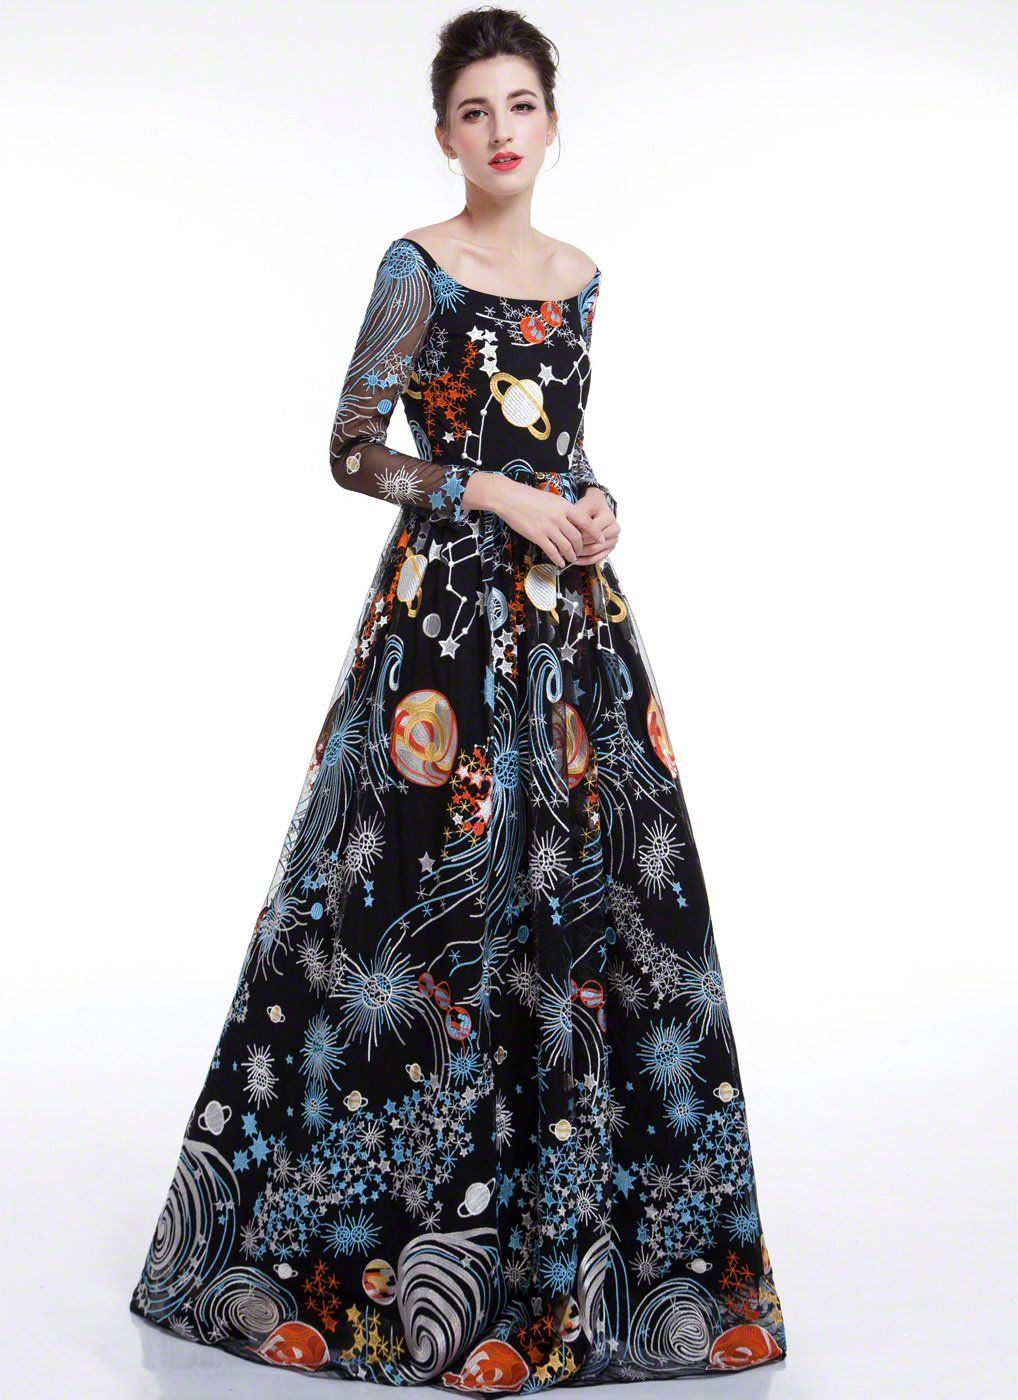 fcc44c7be7 Black Galaxy Print Floor Length Evening Dress with Colorful Outer Space  Embroidery and Long Sleeves